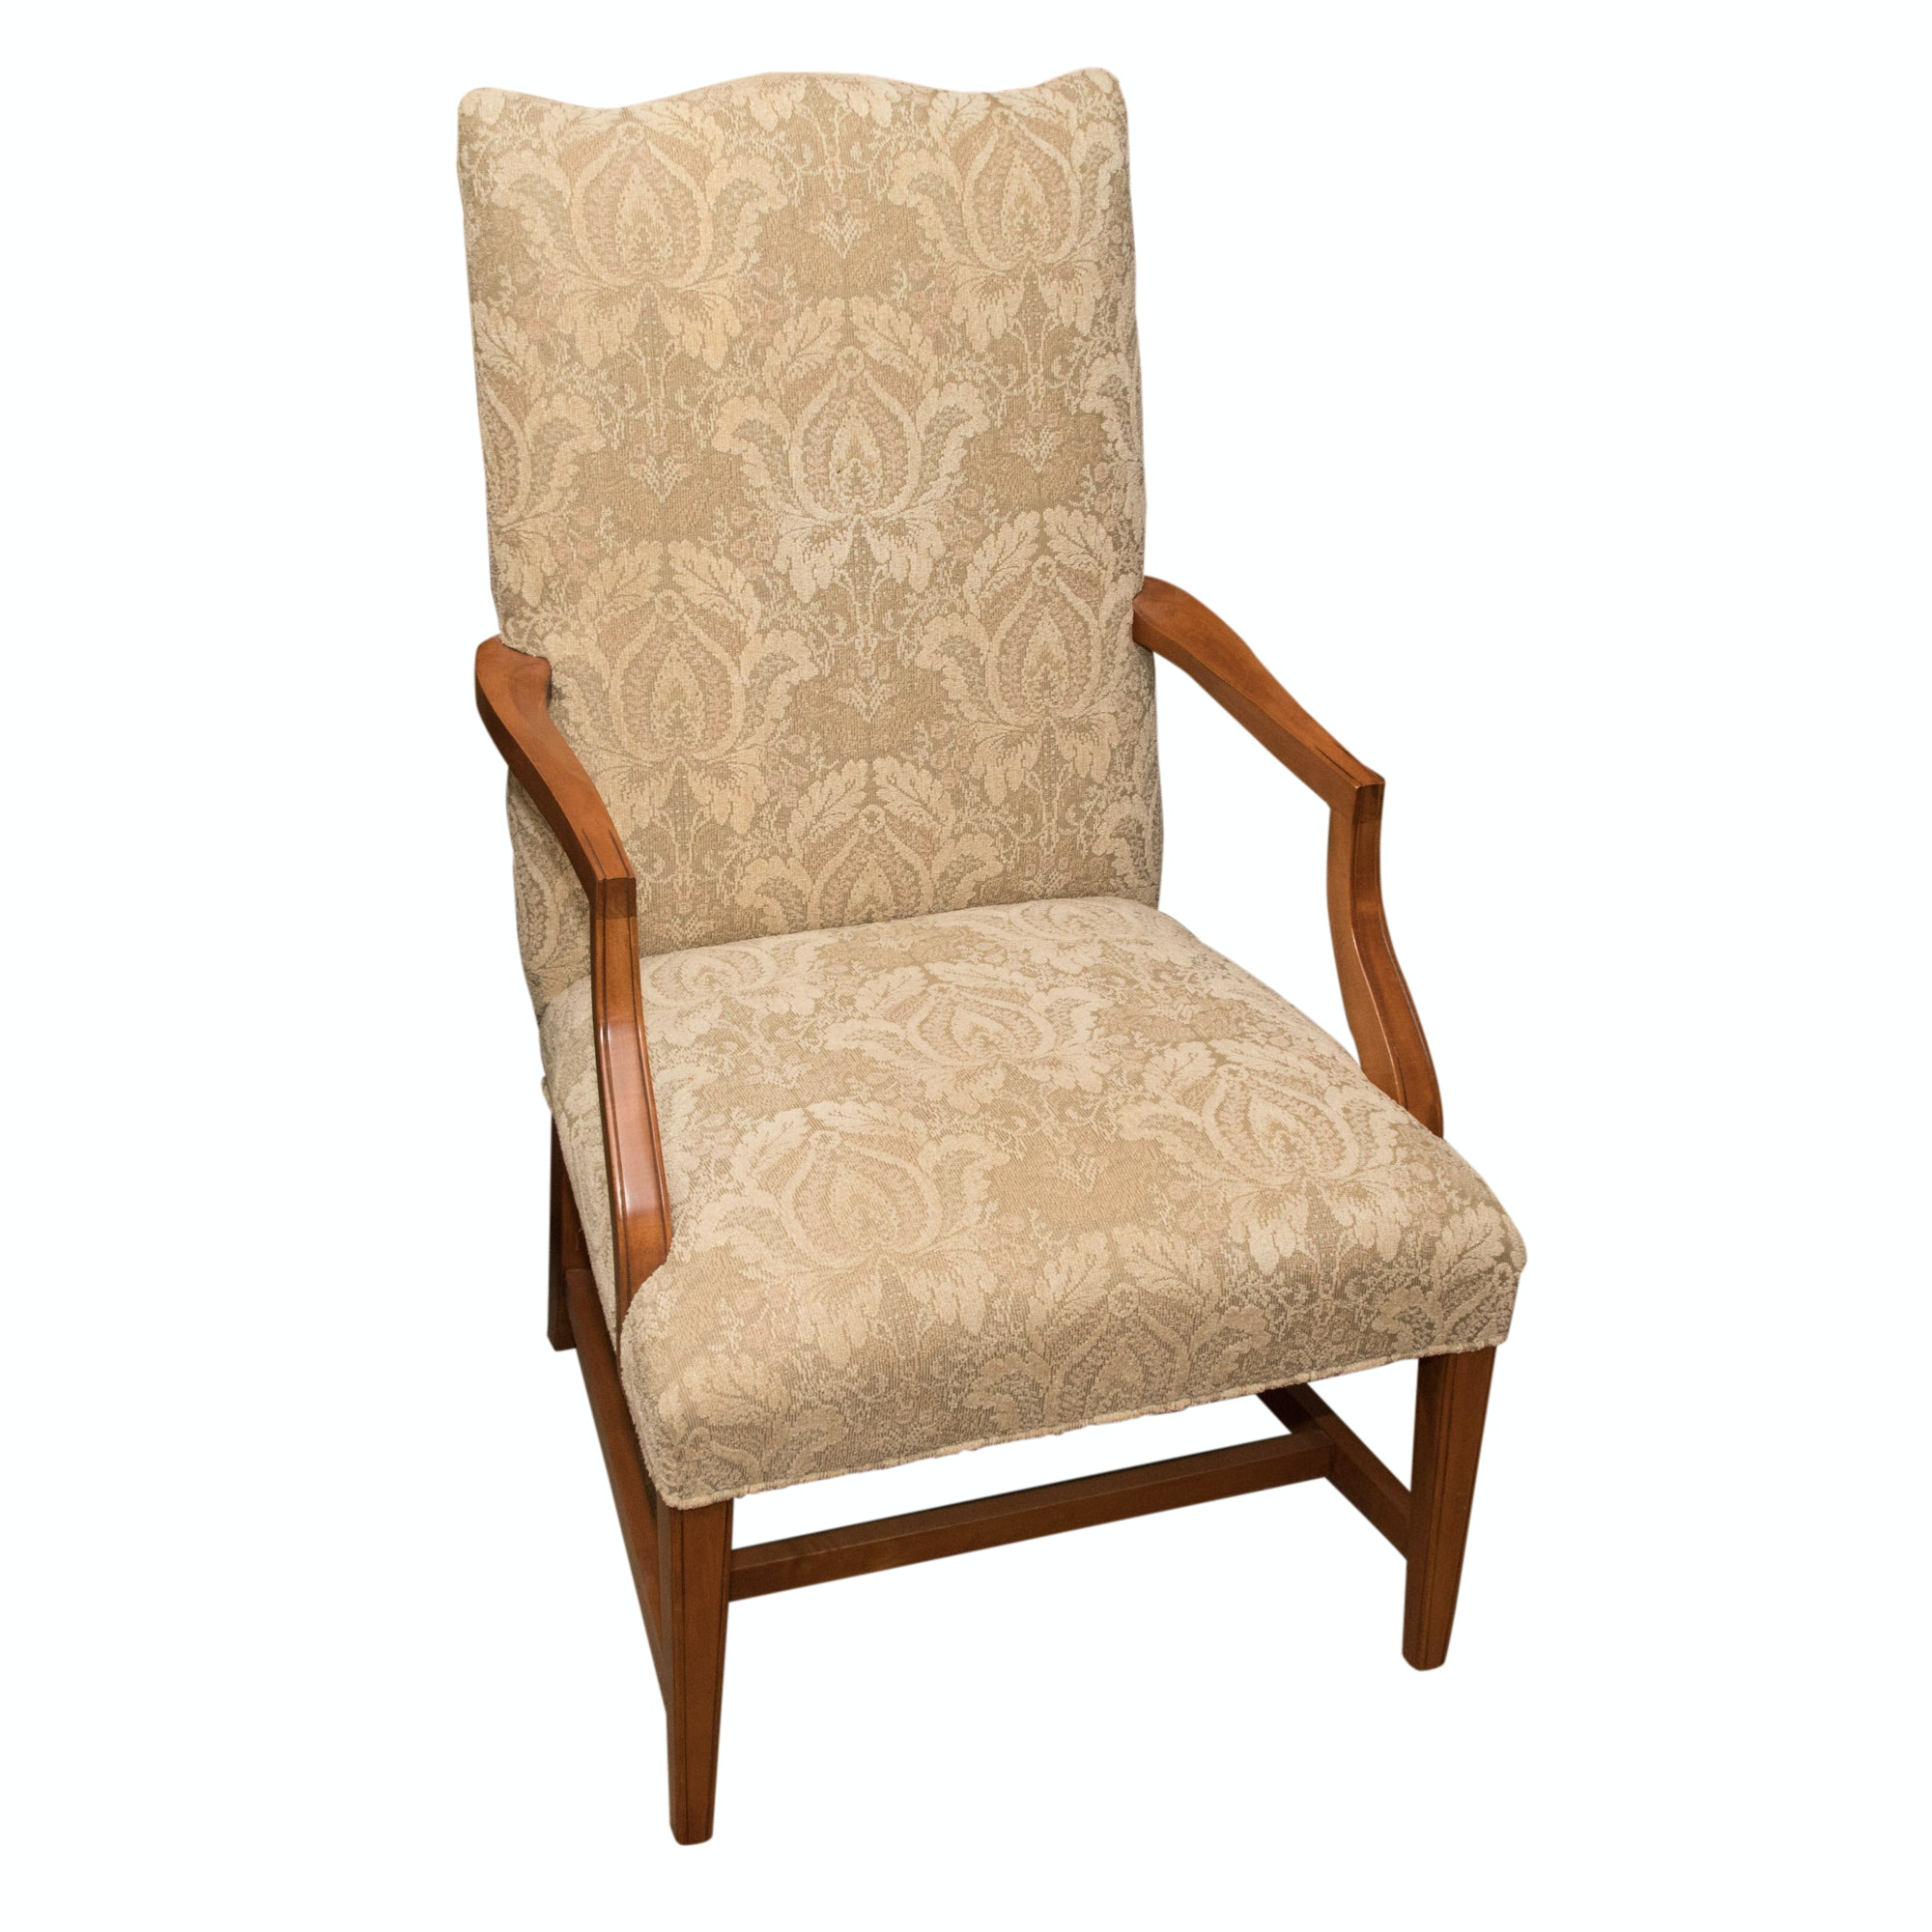 Upholstered Library Style Armchair by Ethan Allen